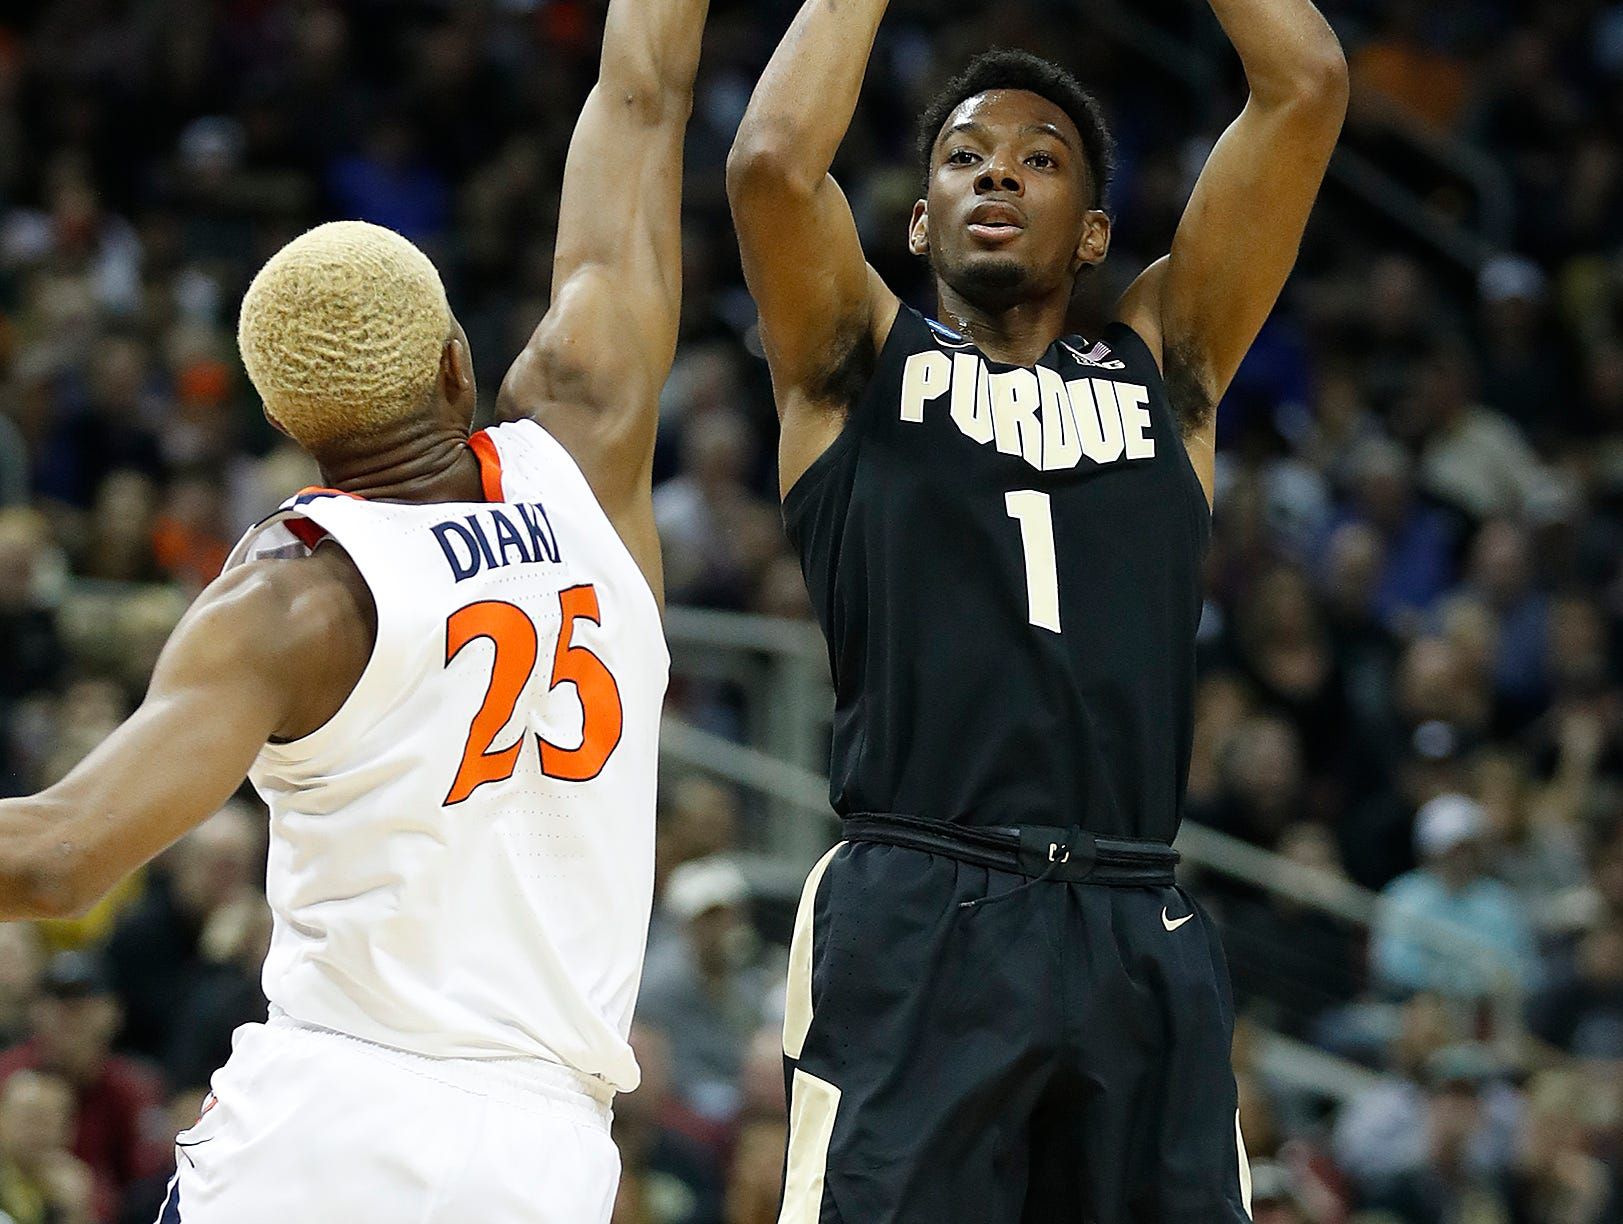 "Purdue Boilermakers forward Aaron Wheeler (1) shoots a three point basket over Virginia Cavaliers forward Mamadi Diakite (25) in the first half of their NCAA Division I Basketball Championship ""Elite 8"" basketball game at the KFC Yum! Center in Louisville, KY., on Saturday, Mar 30, 2019."